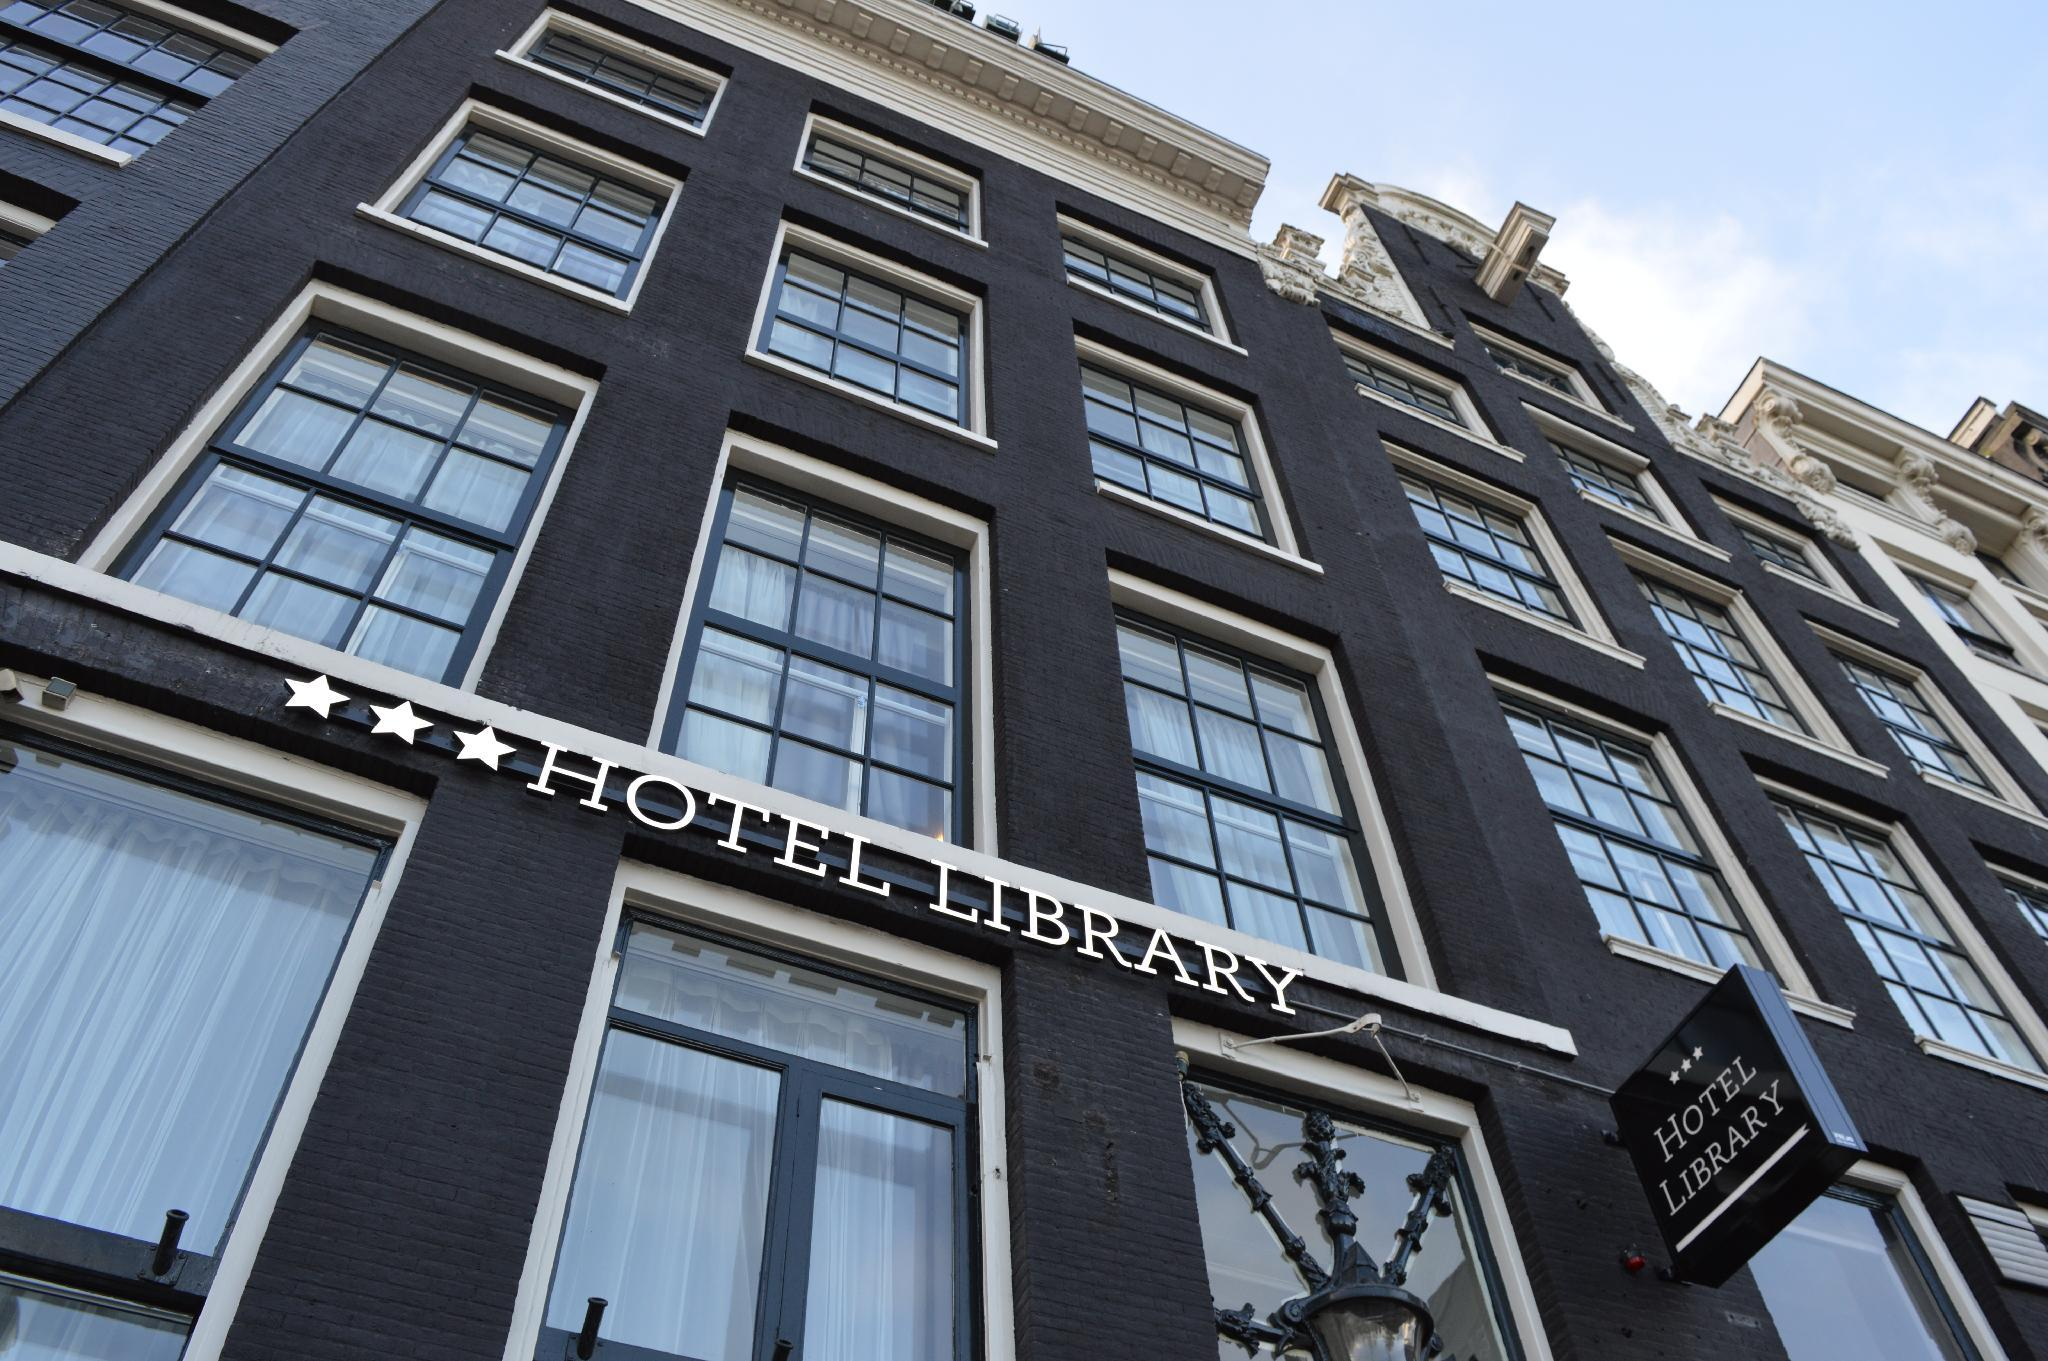 Hotel Library Amsterdam